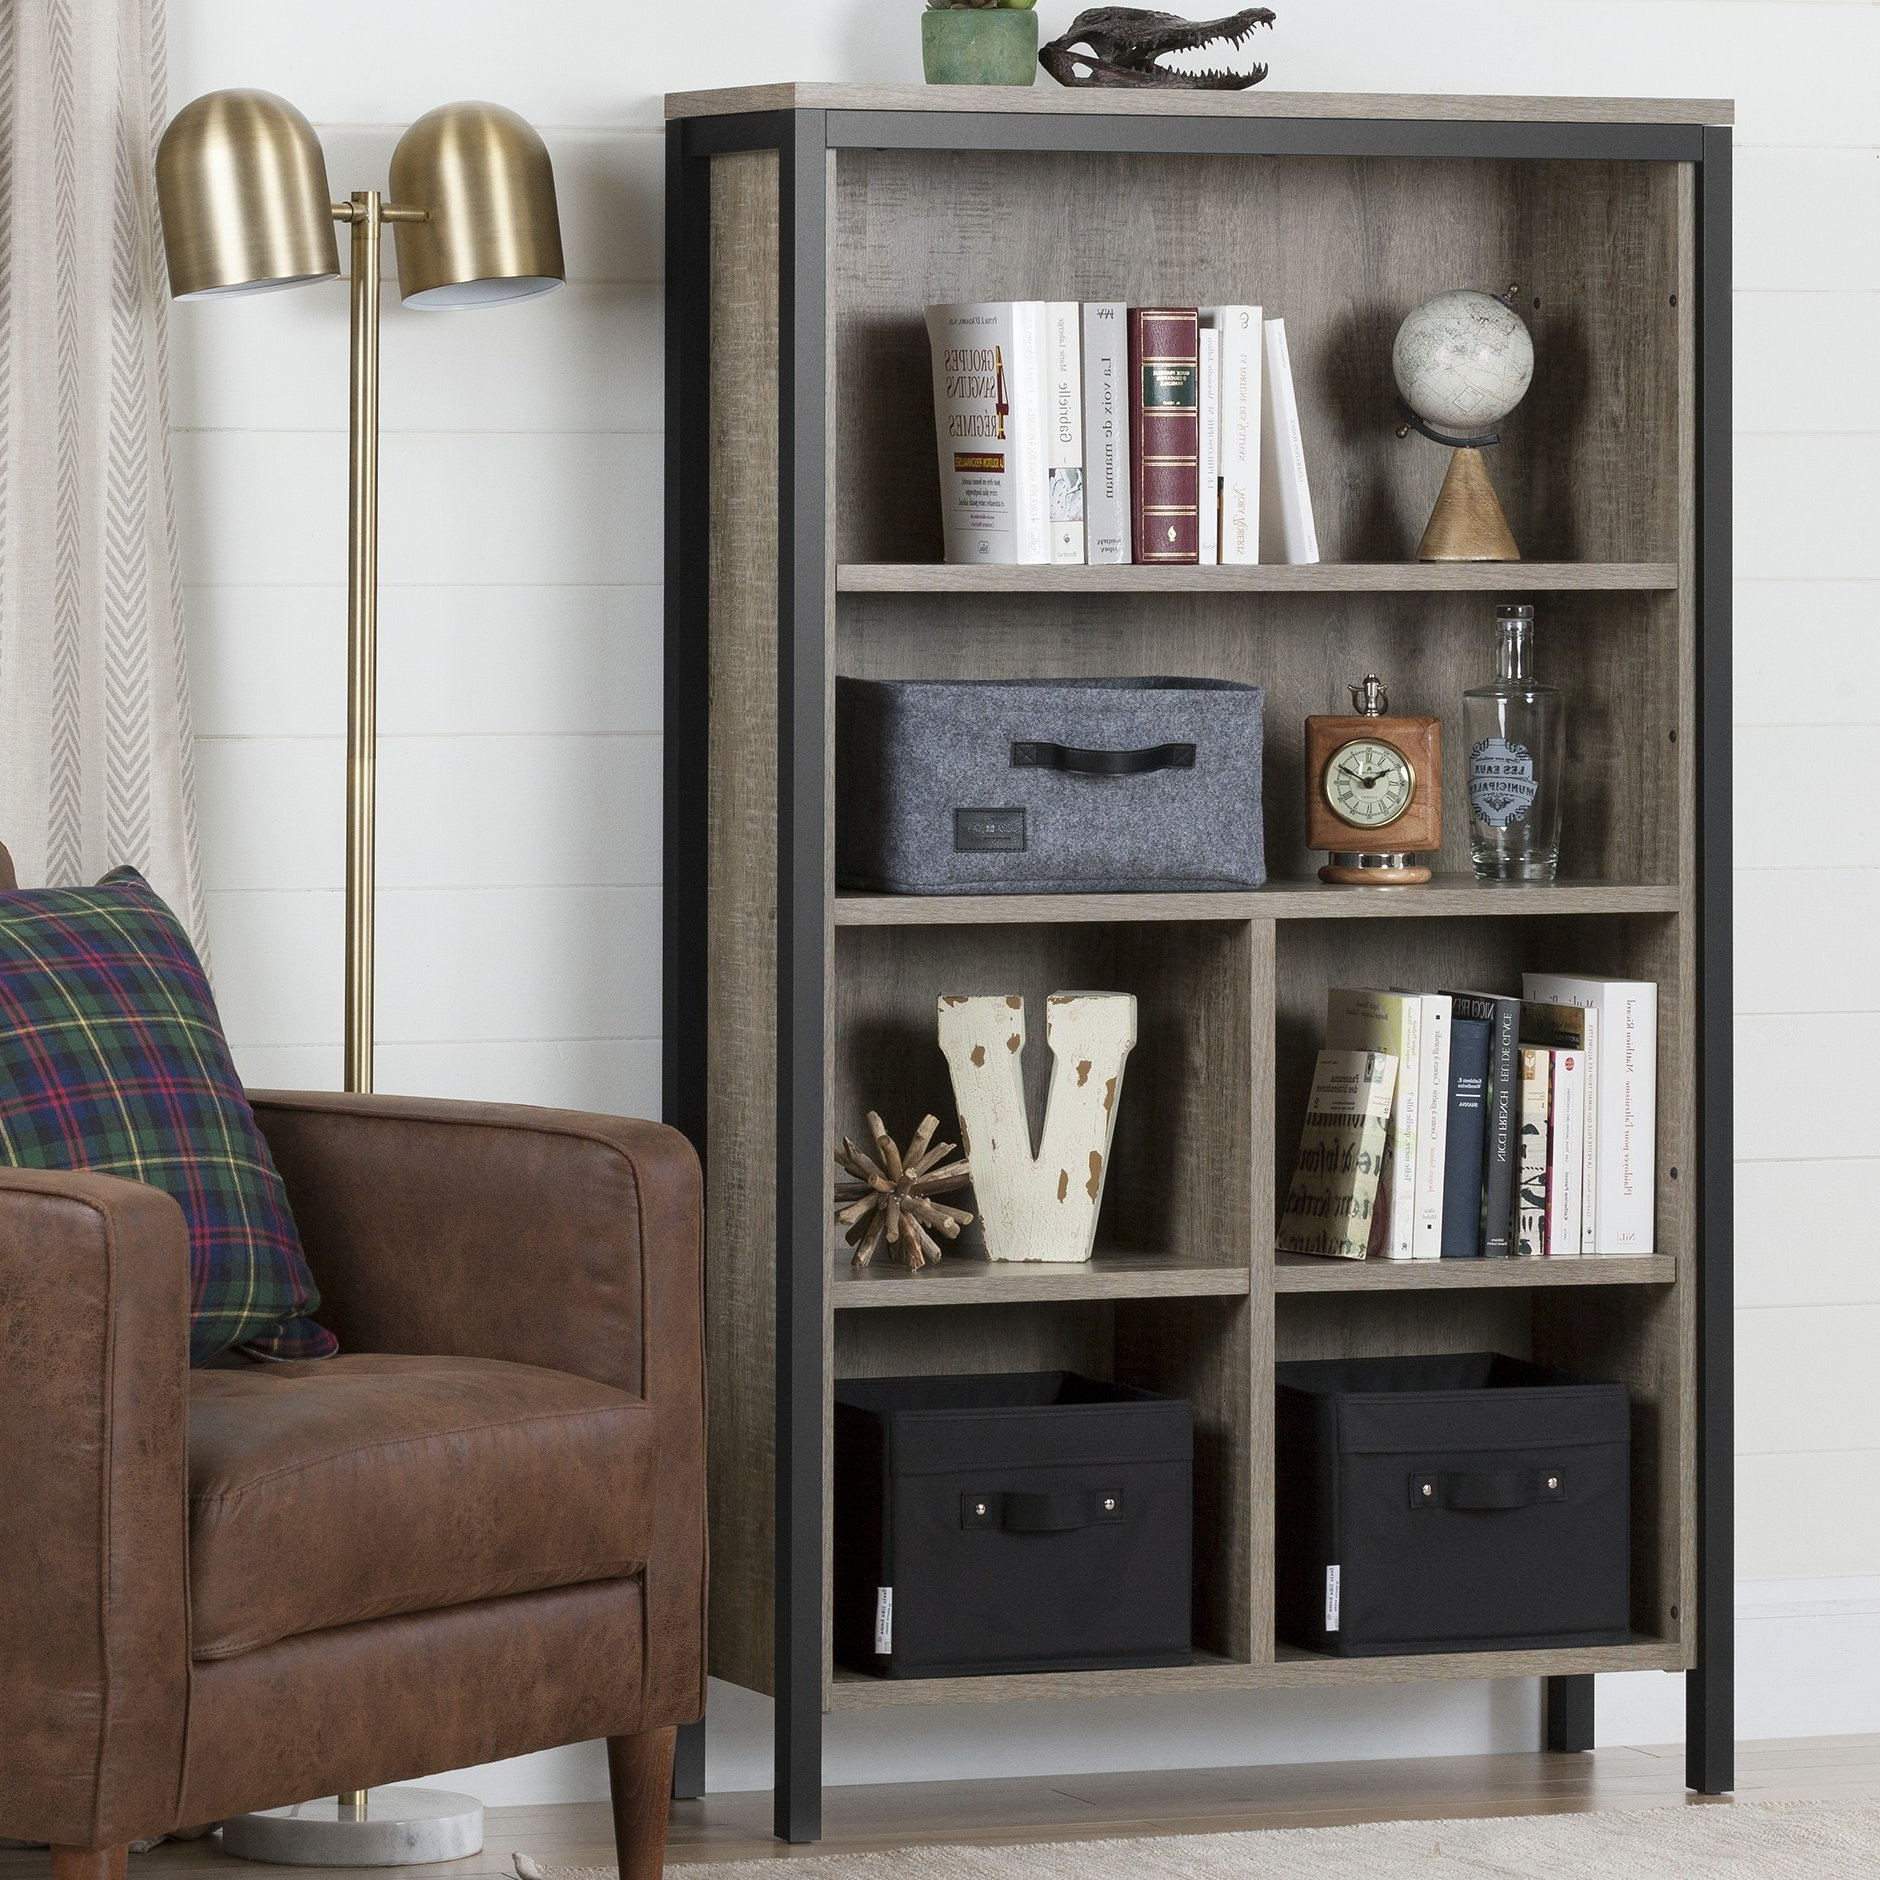 Finkelstein Cube Bookcases For Well Known Munich Standard Bookcase (View 15 of 20)